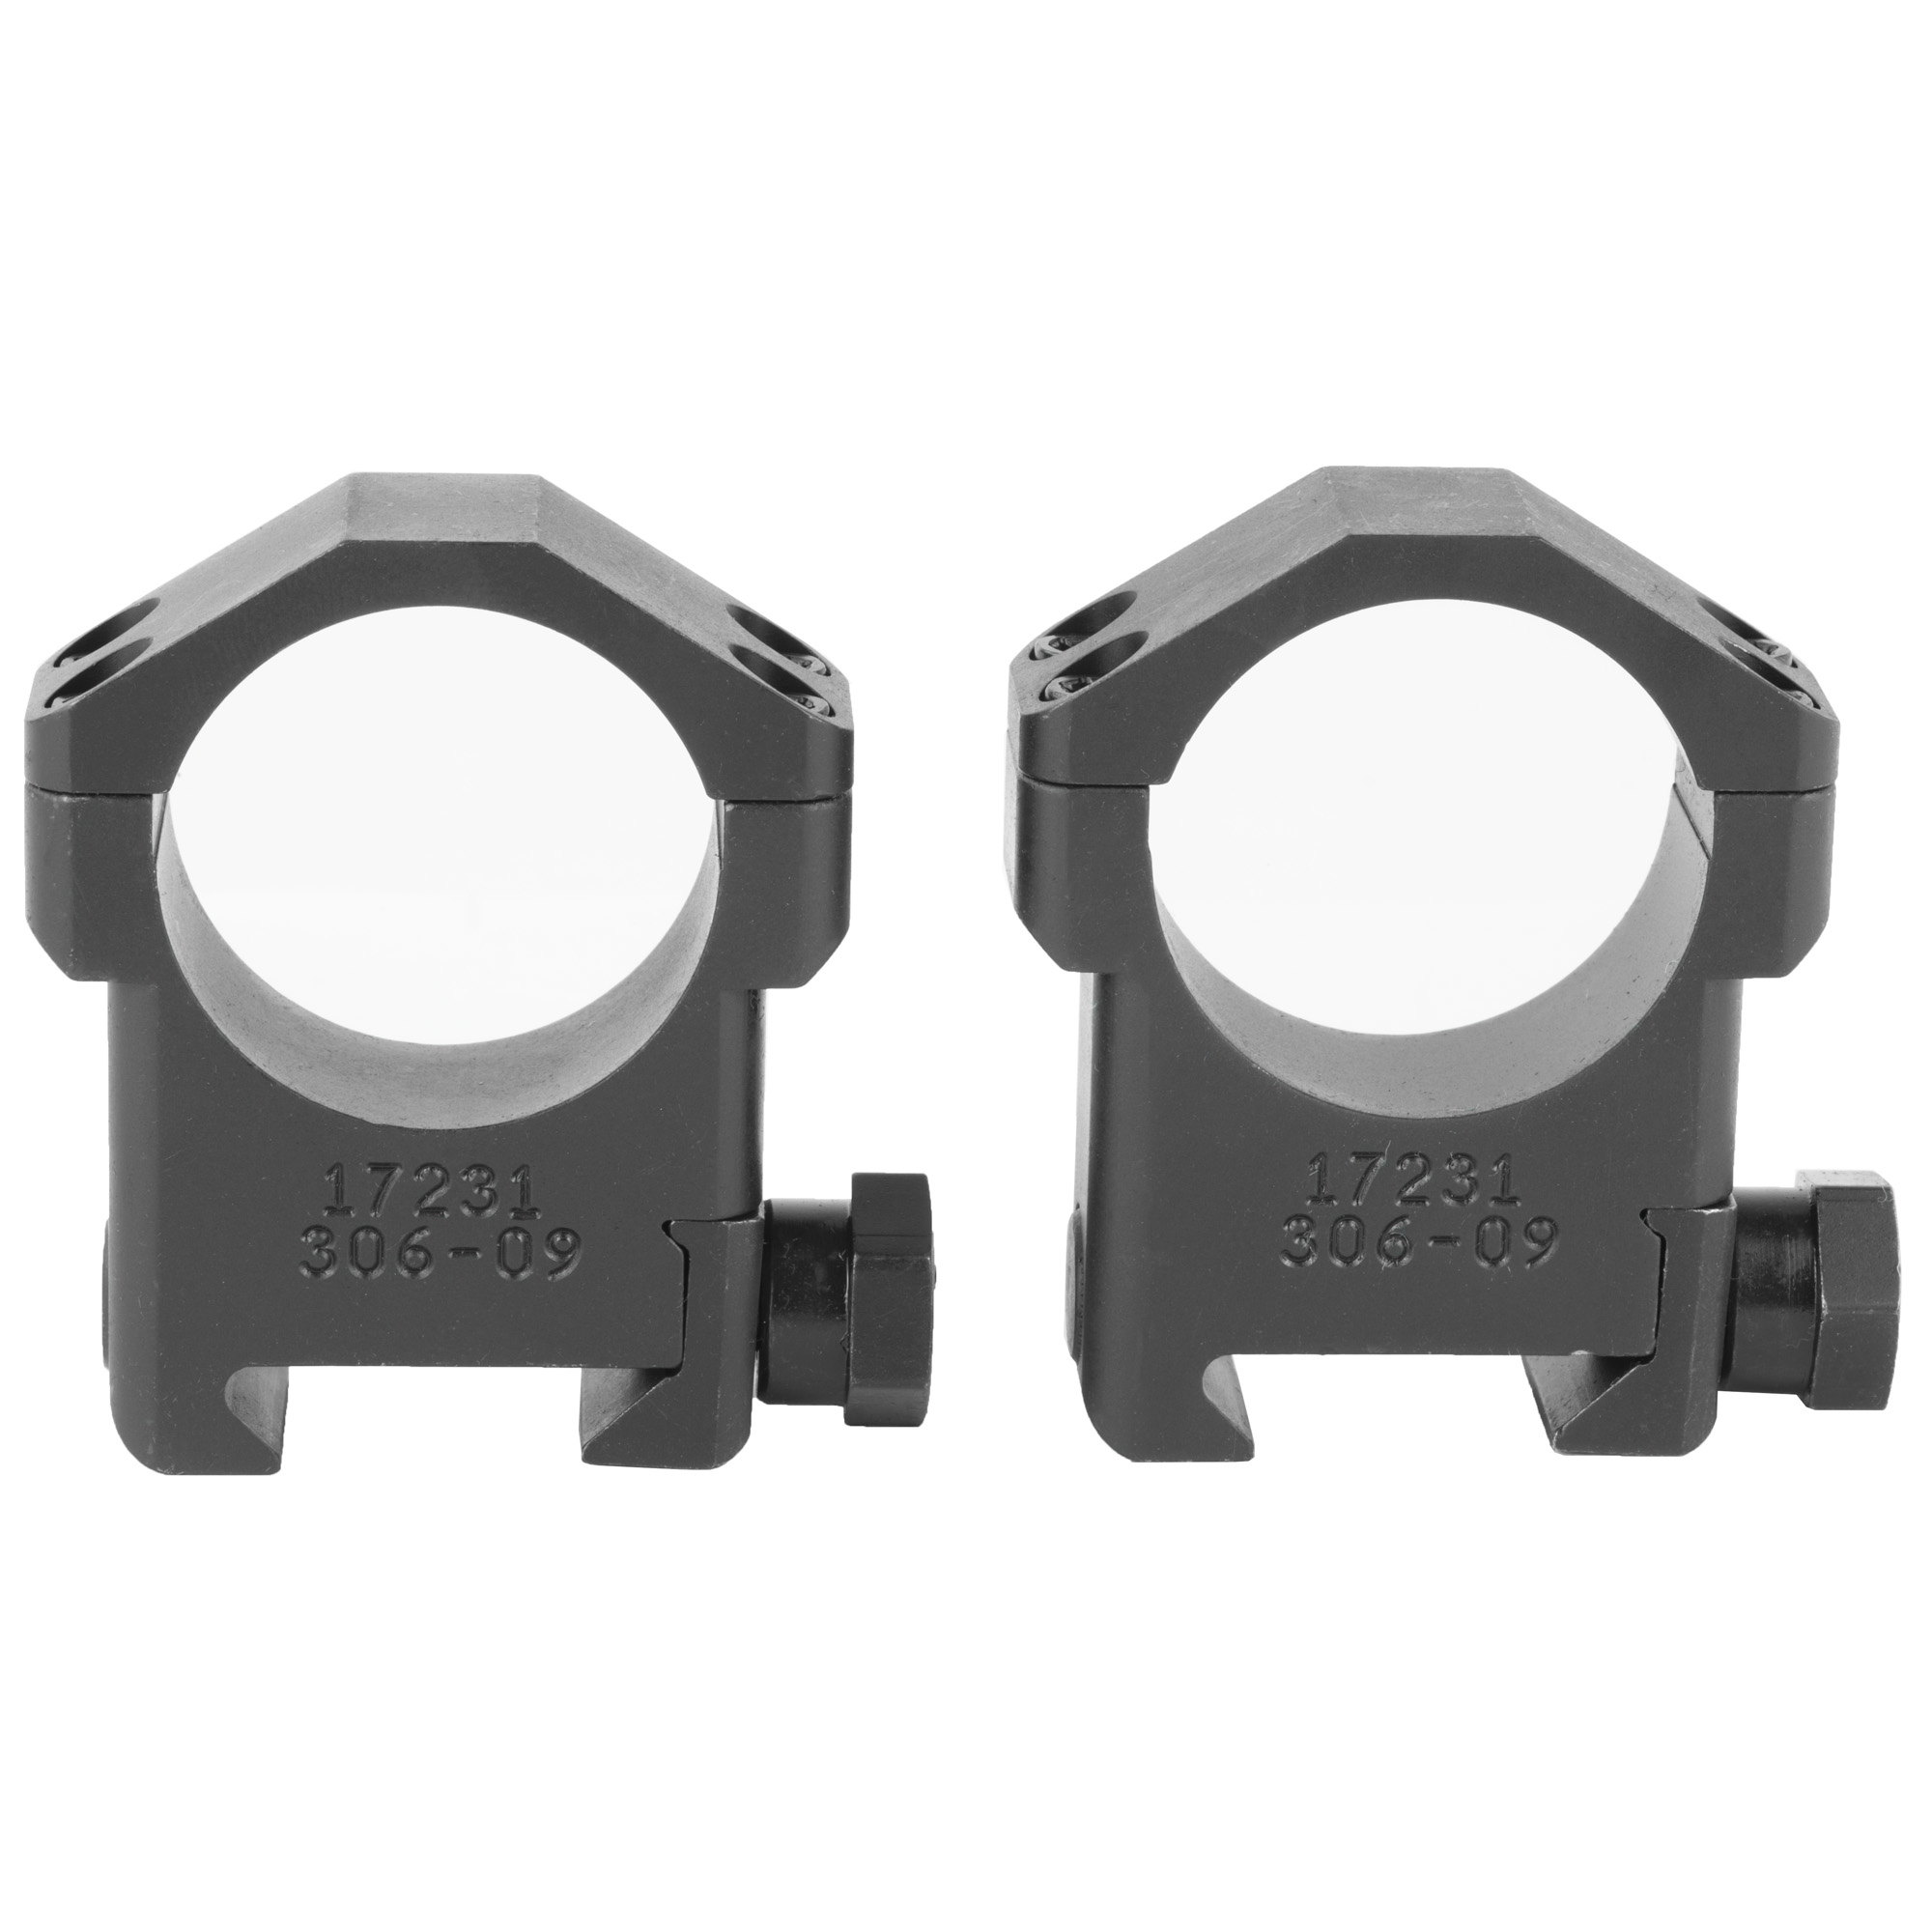 The Badger Ordnance 30mm High Scope Rings are optimized for use with current 30mm optics and accommodate precision rifles with mid and heavy barrel profiles. They are machined from Ordnance Grade Steel and Black Oxide finished.